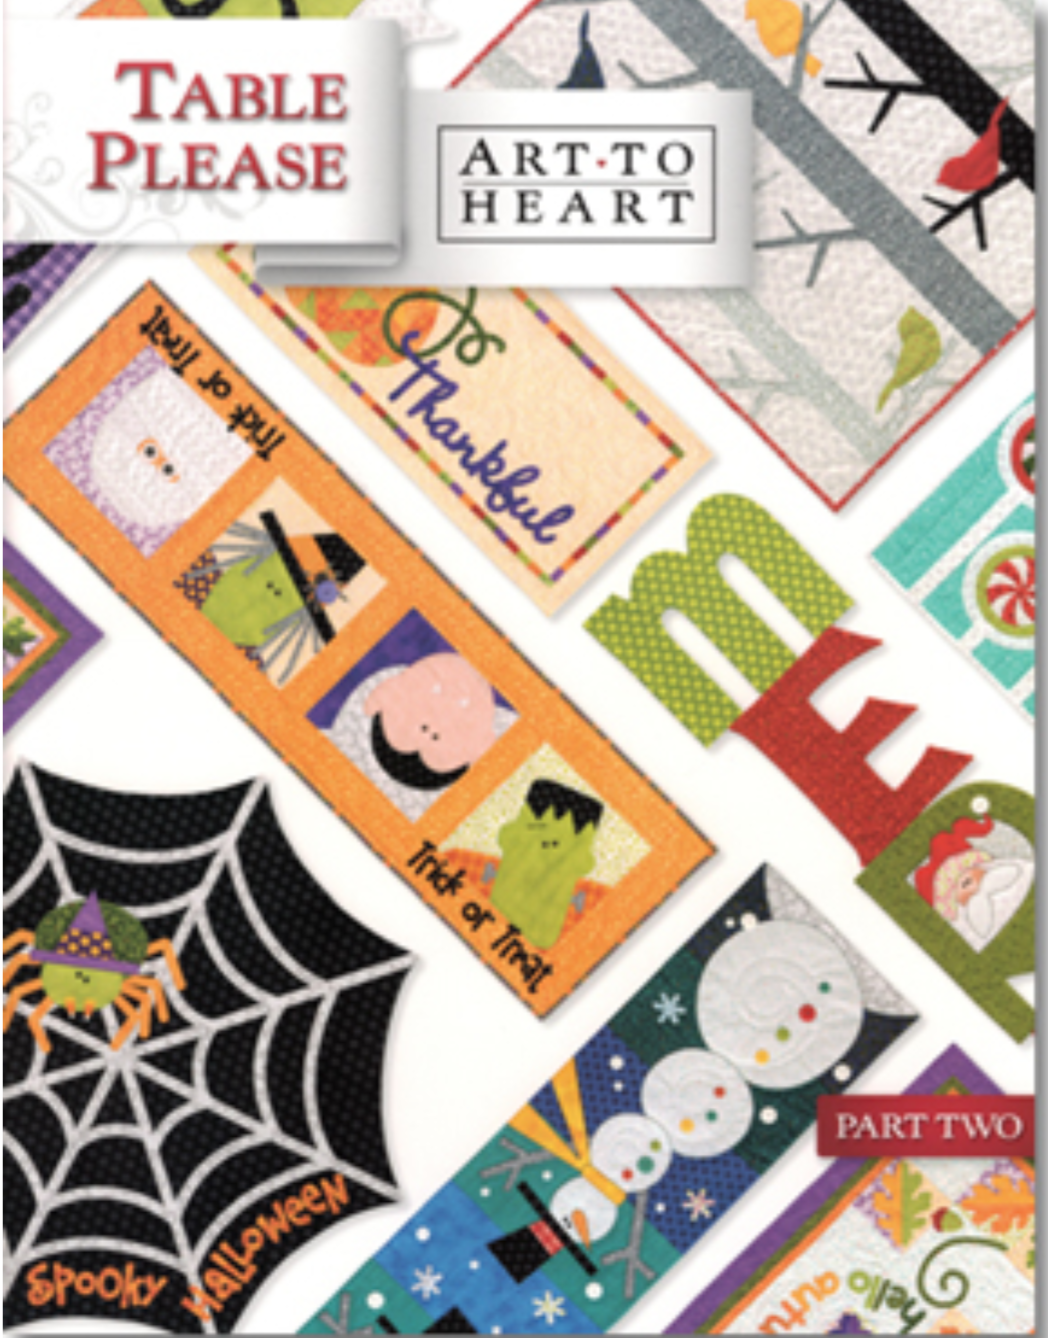 550B Art to Heart Table Please Part Two - Halloween